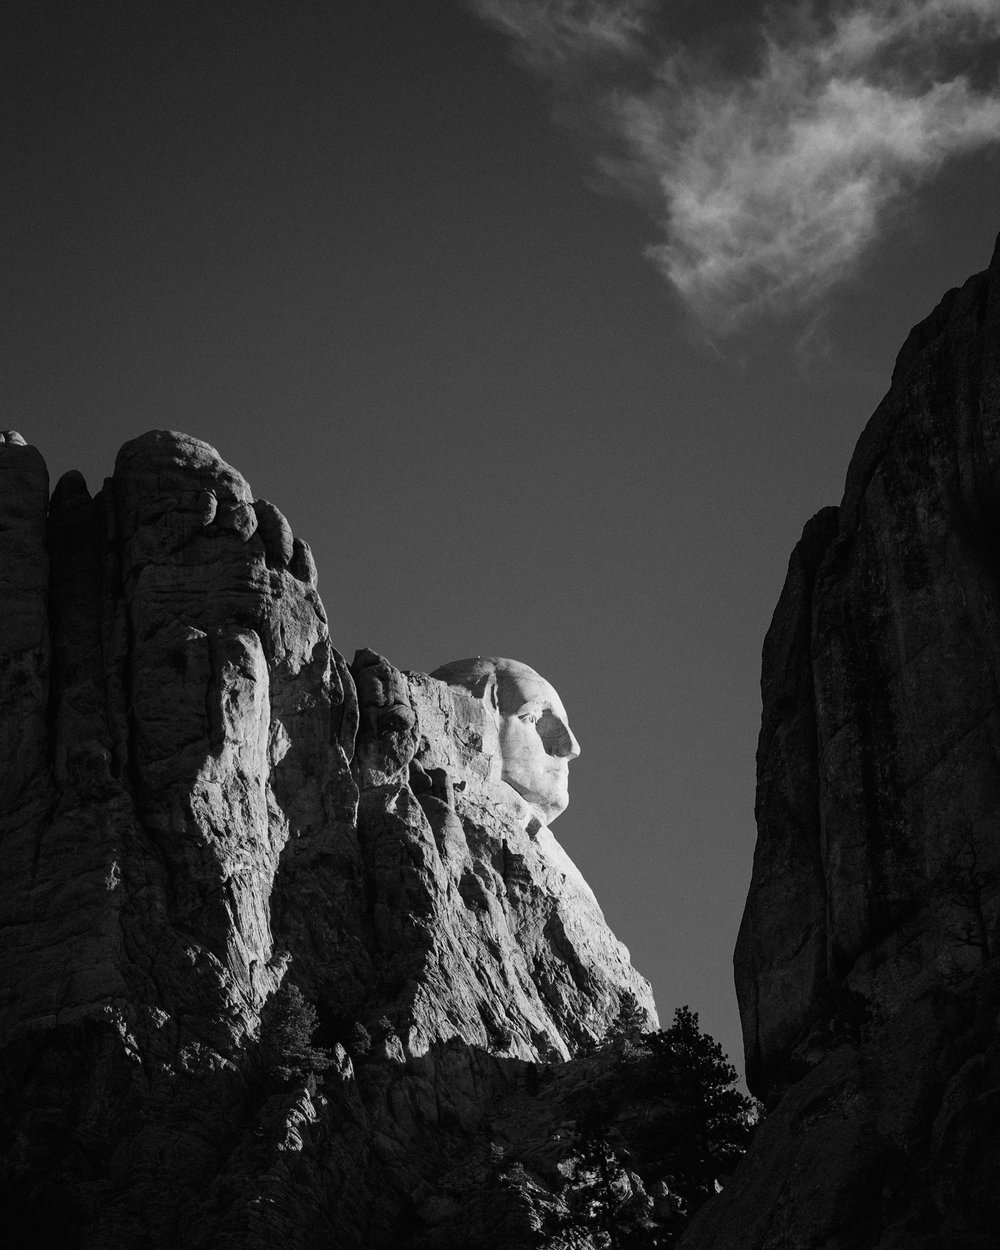 Profile View at Sunrise, Mount Rushmore, S.D.